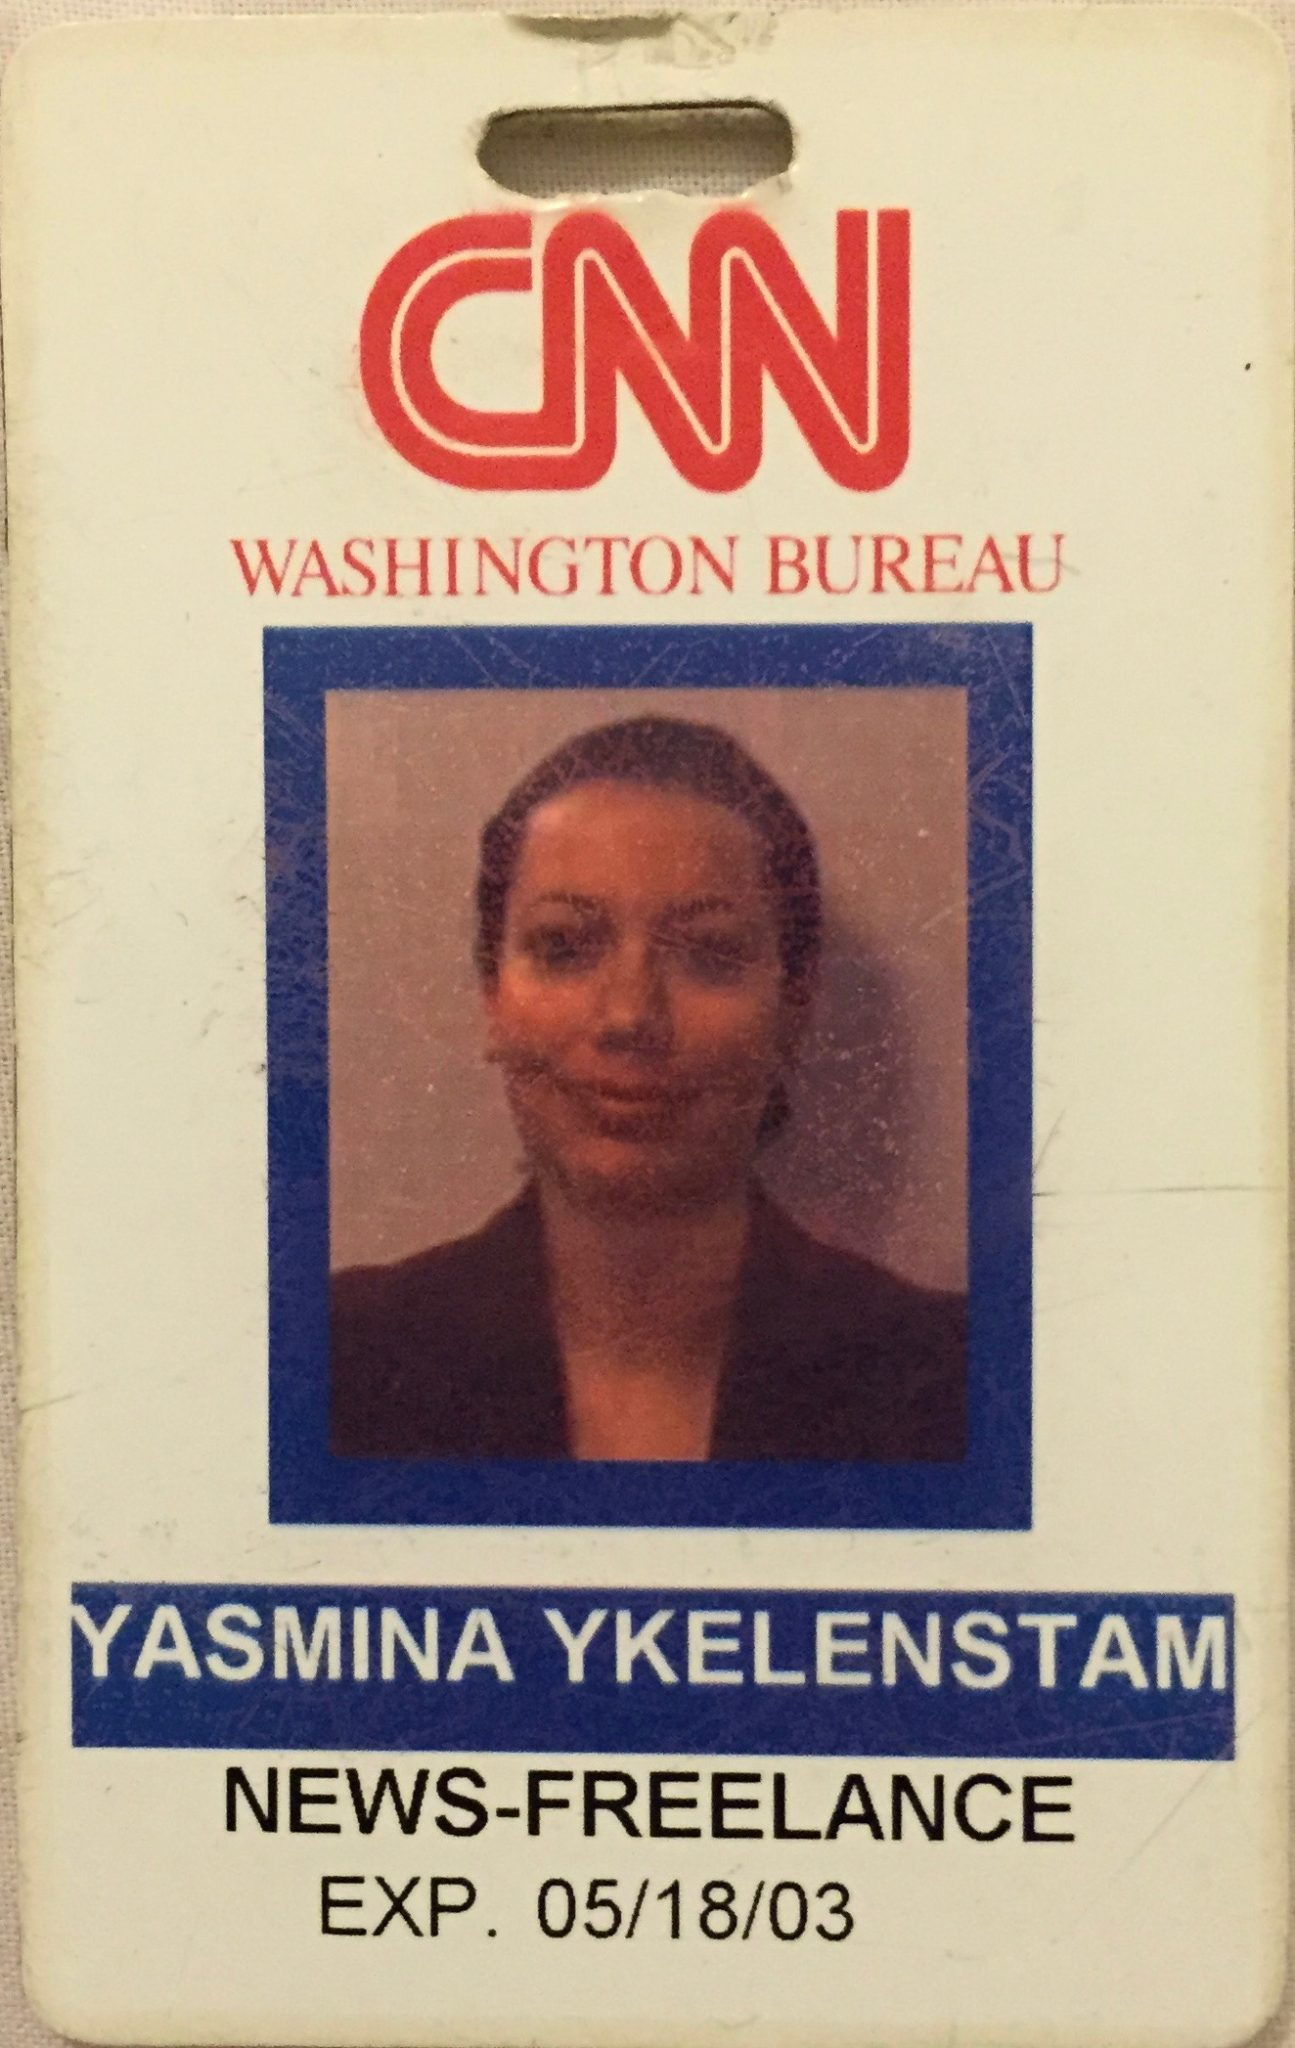 And the inflammation really kicking in here…another CNN Washington D.C. press card